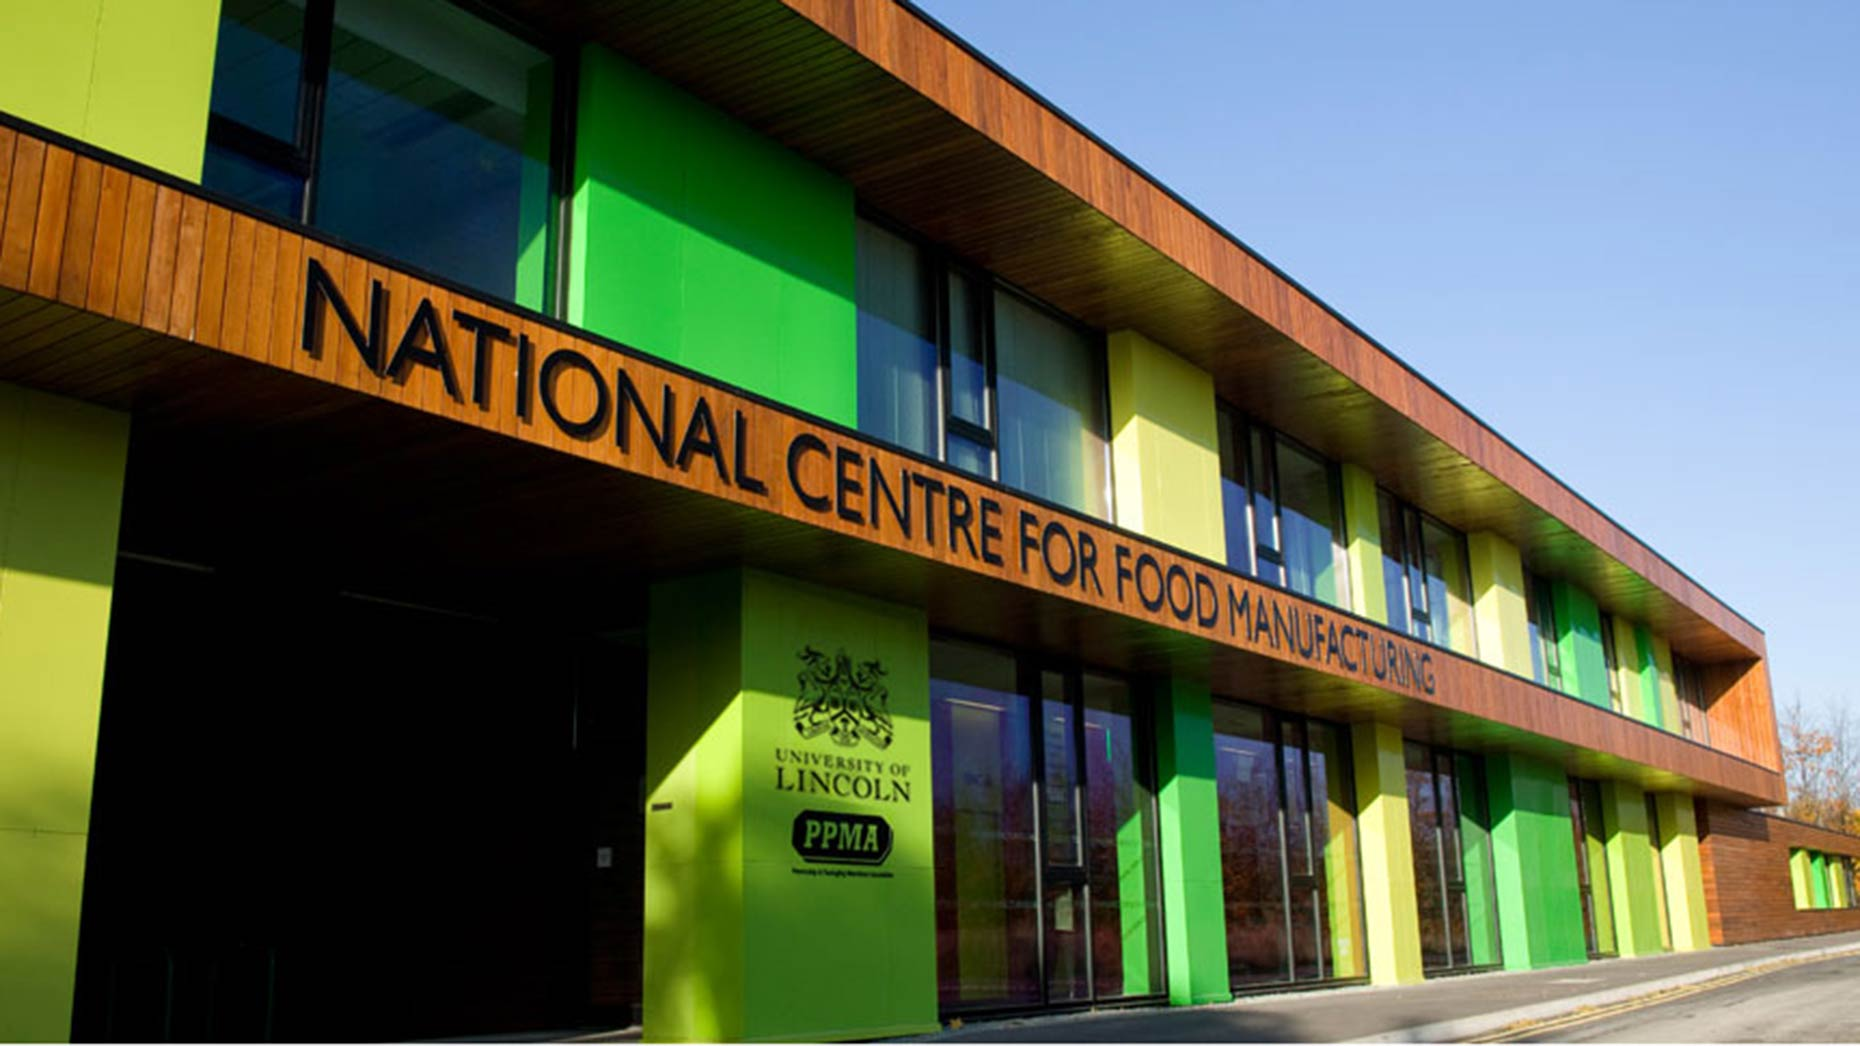 The University of Lincoln National Centre for Food Manufacturing in Holbeach. Photo: UoL